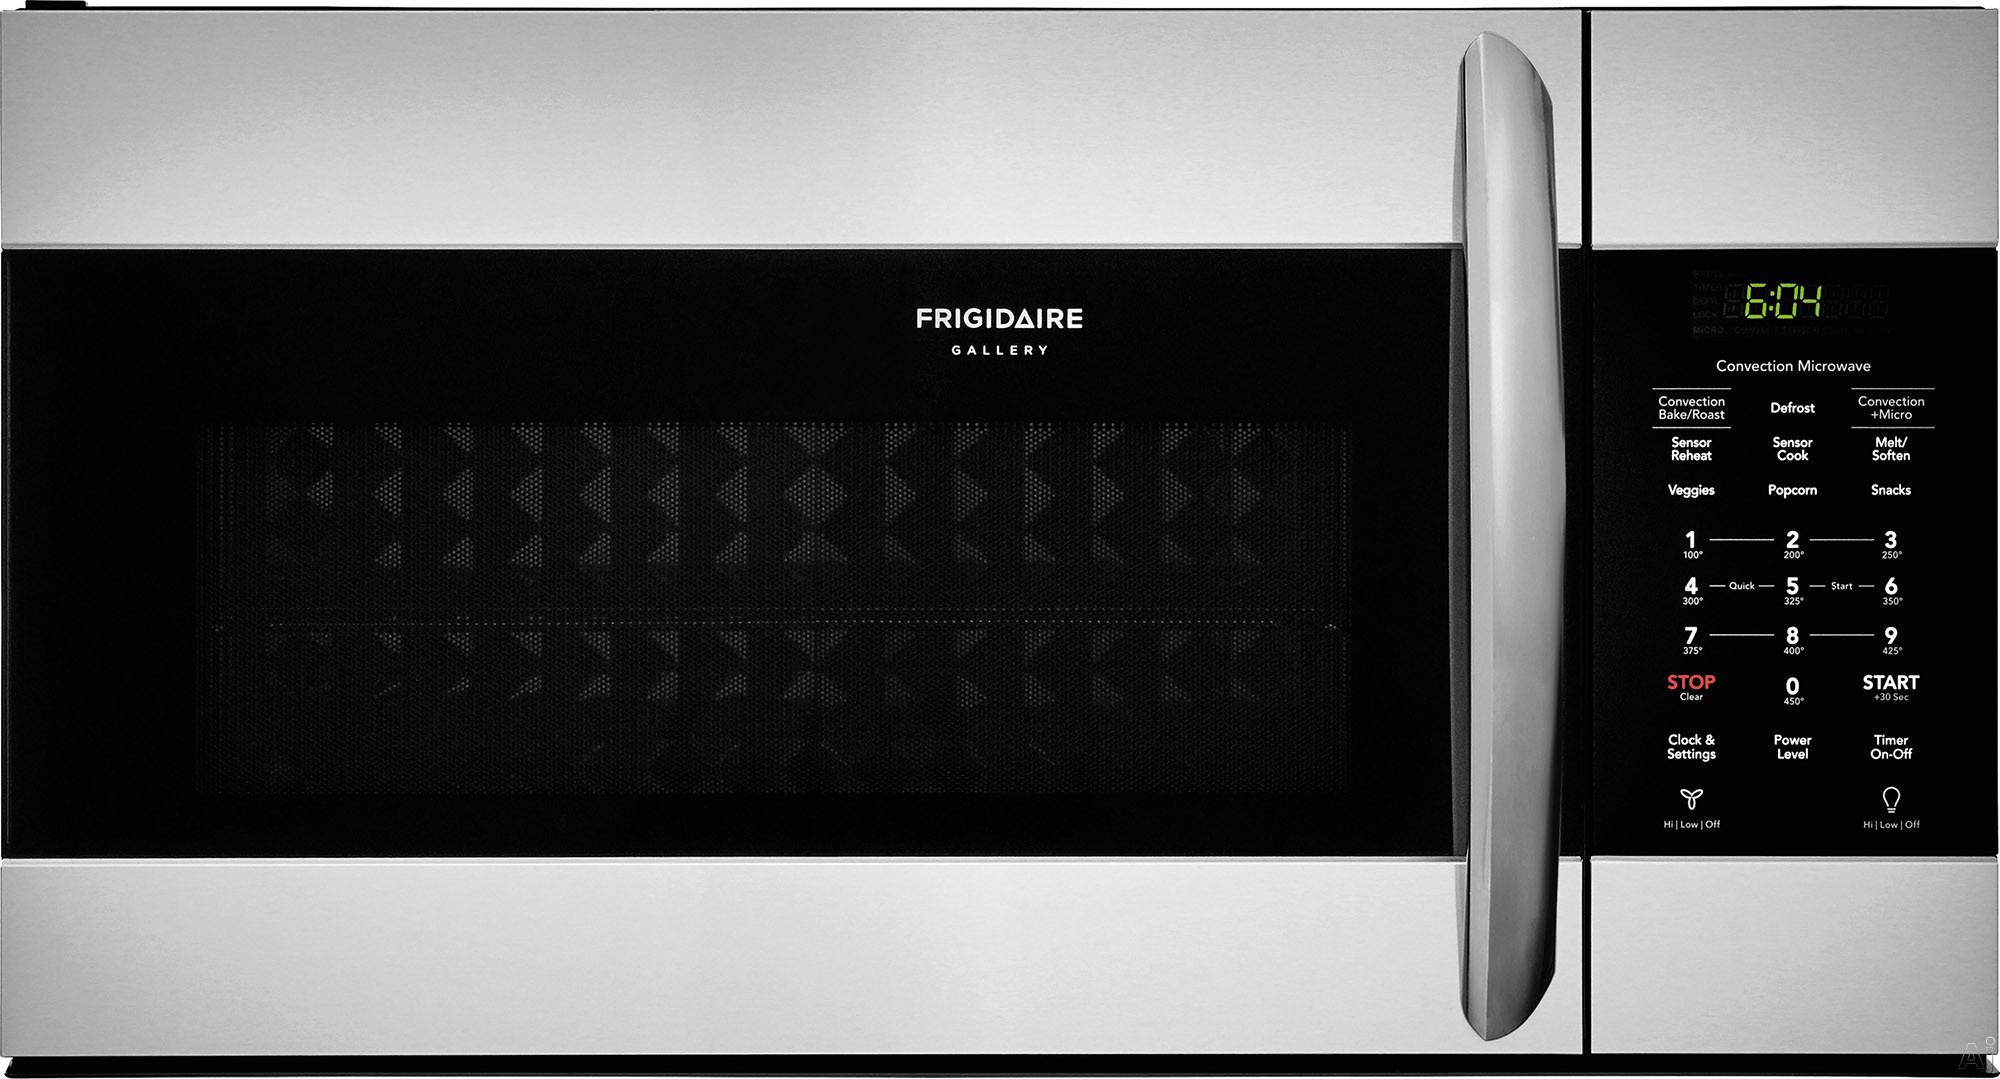 """Frigidaire Gallery Series FGMV155CTF 30 Inch Over the Range Microwave with Convection Option, Sensor Cooking, SpaceWise® Rack, One-Touch Options, PureAir® Microwave Filter, Effortless Cleanâ"""""""